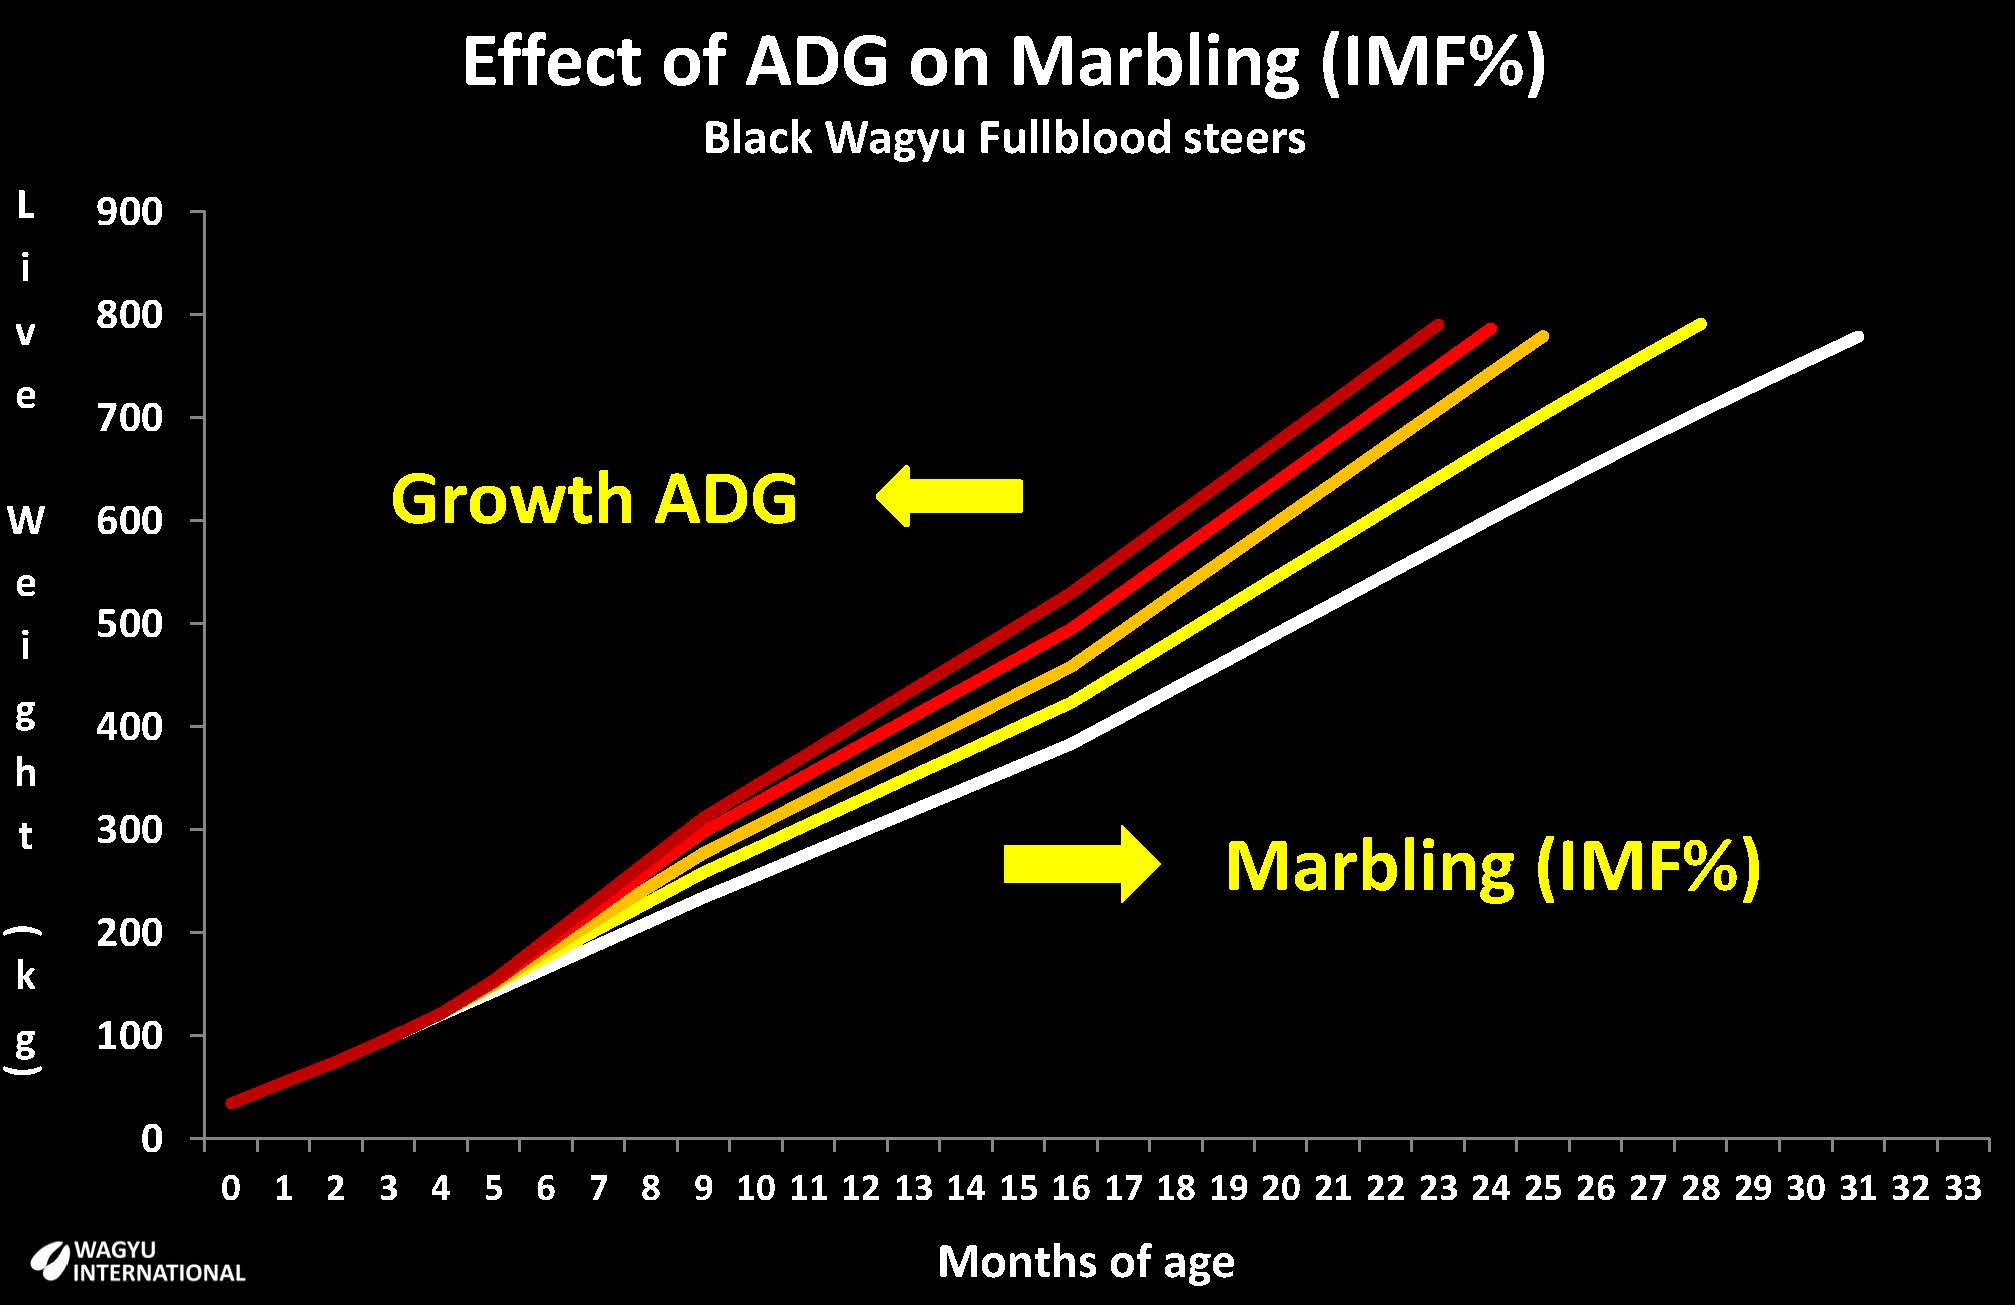 Chart showing marbling IMF% versus ADG and age of processing Wagyu